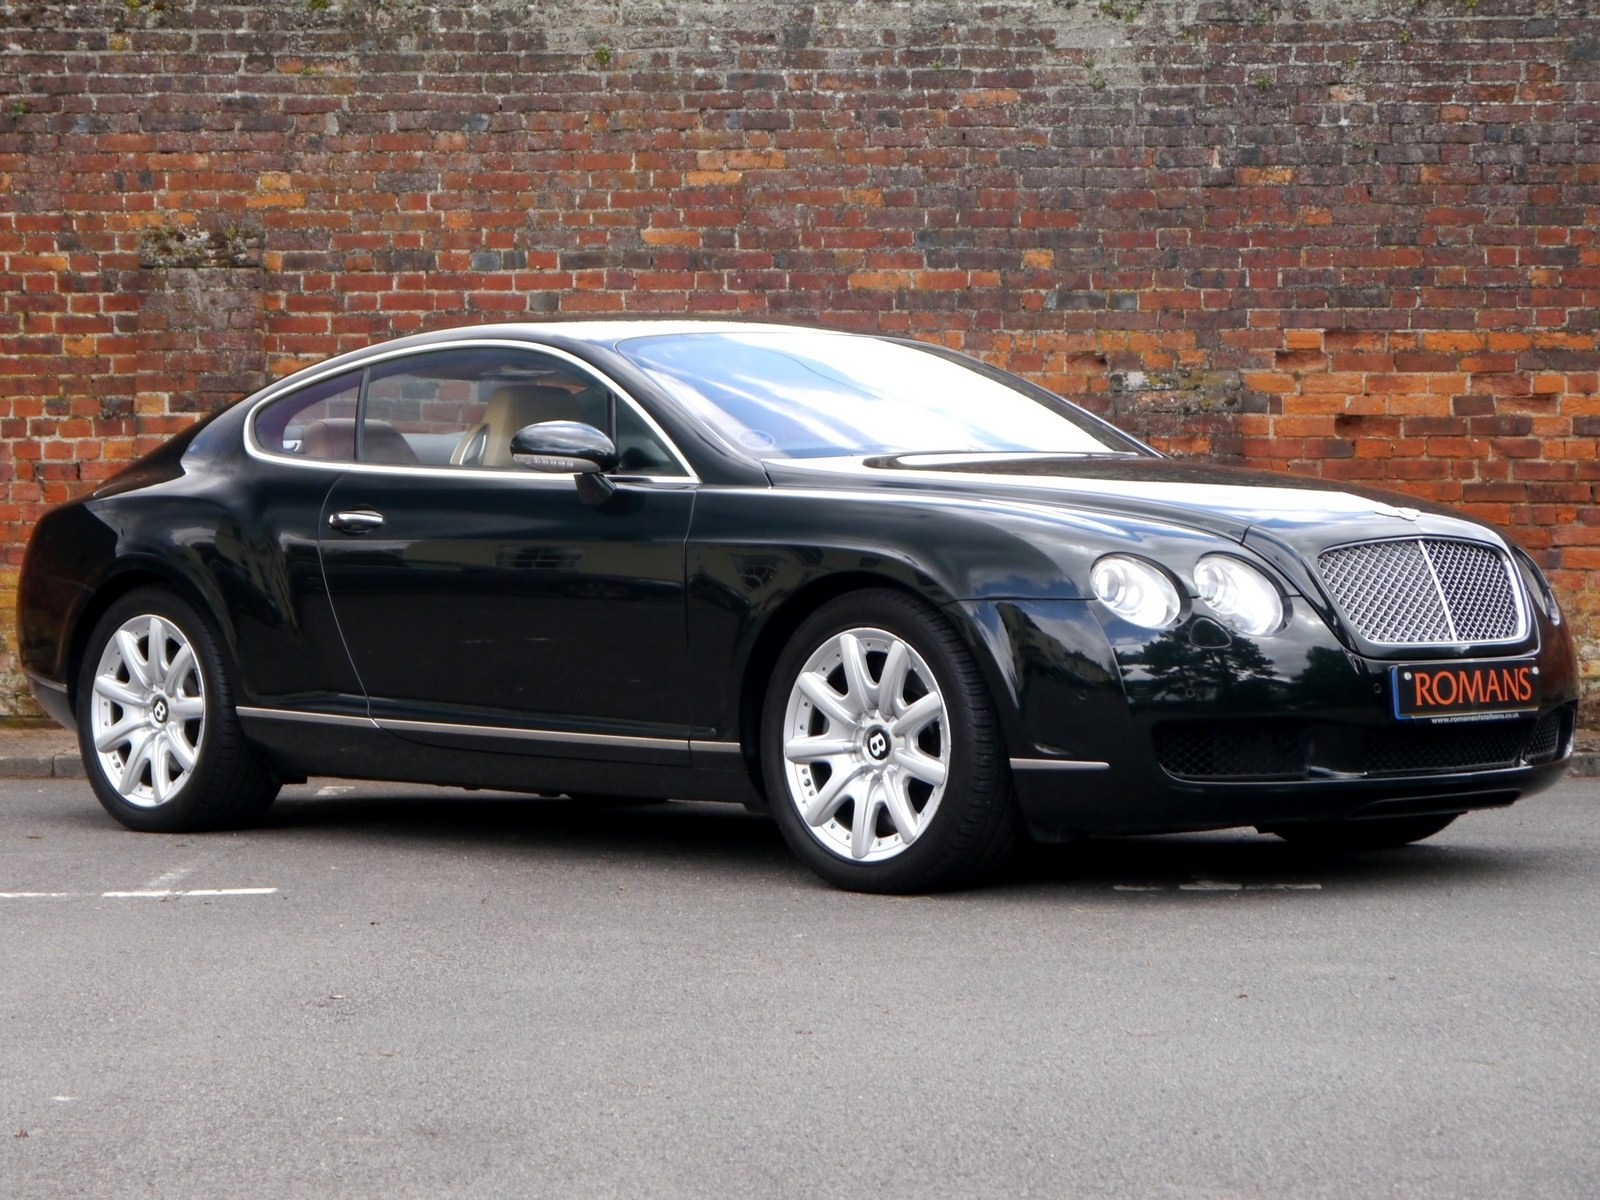 Pro Bentley Supersport Fb as well Bently Flying Spur Roof Spoiler Trunk Lip Wing Body Kit Upper Lower Sarona Oem Original as well Fire In Daimlers Factory In Cannstatt On June in addition Zbg Jhv P together with Bentley Continental Gtc. on 2005 bentley continental gt